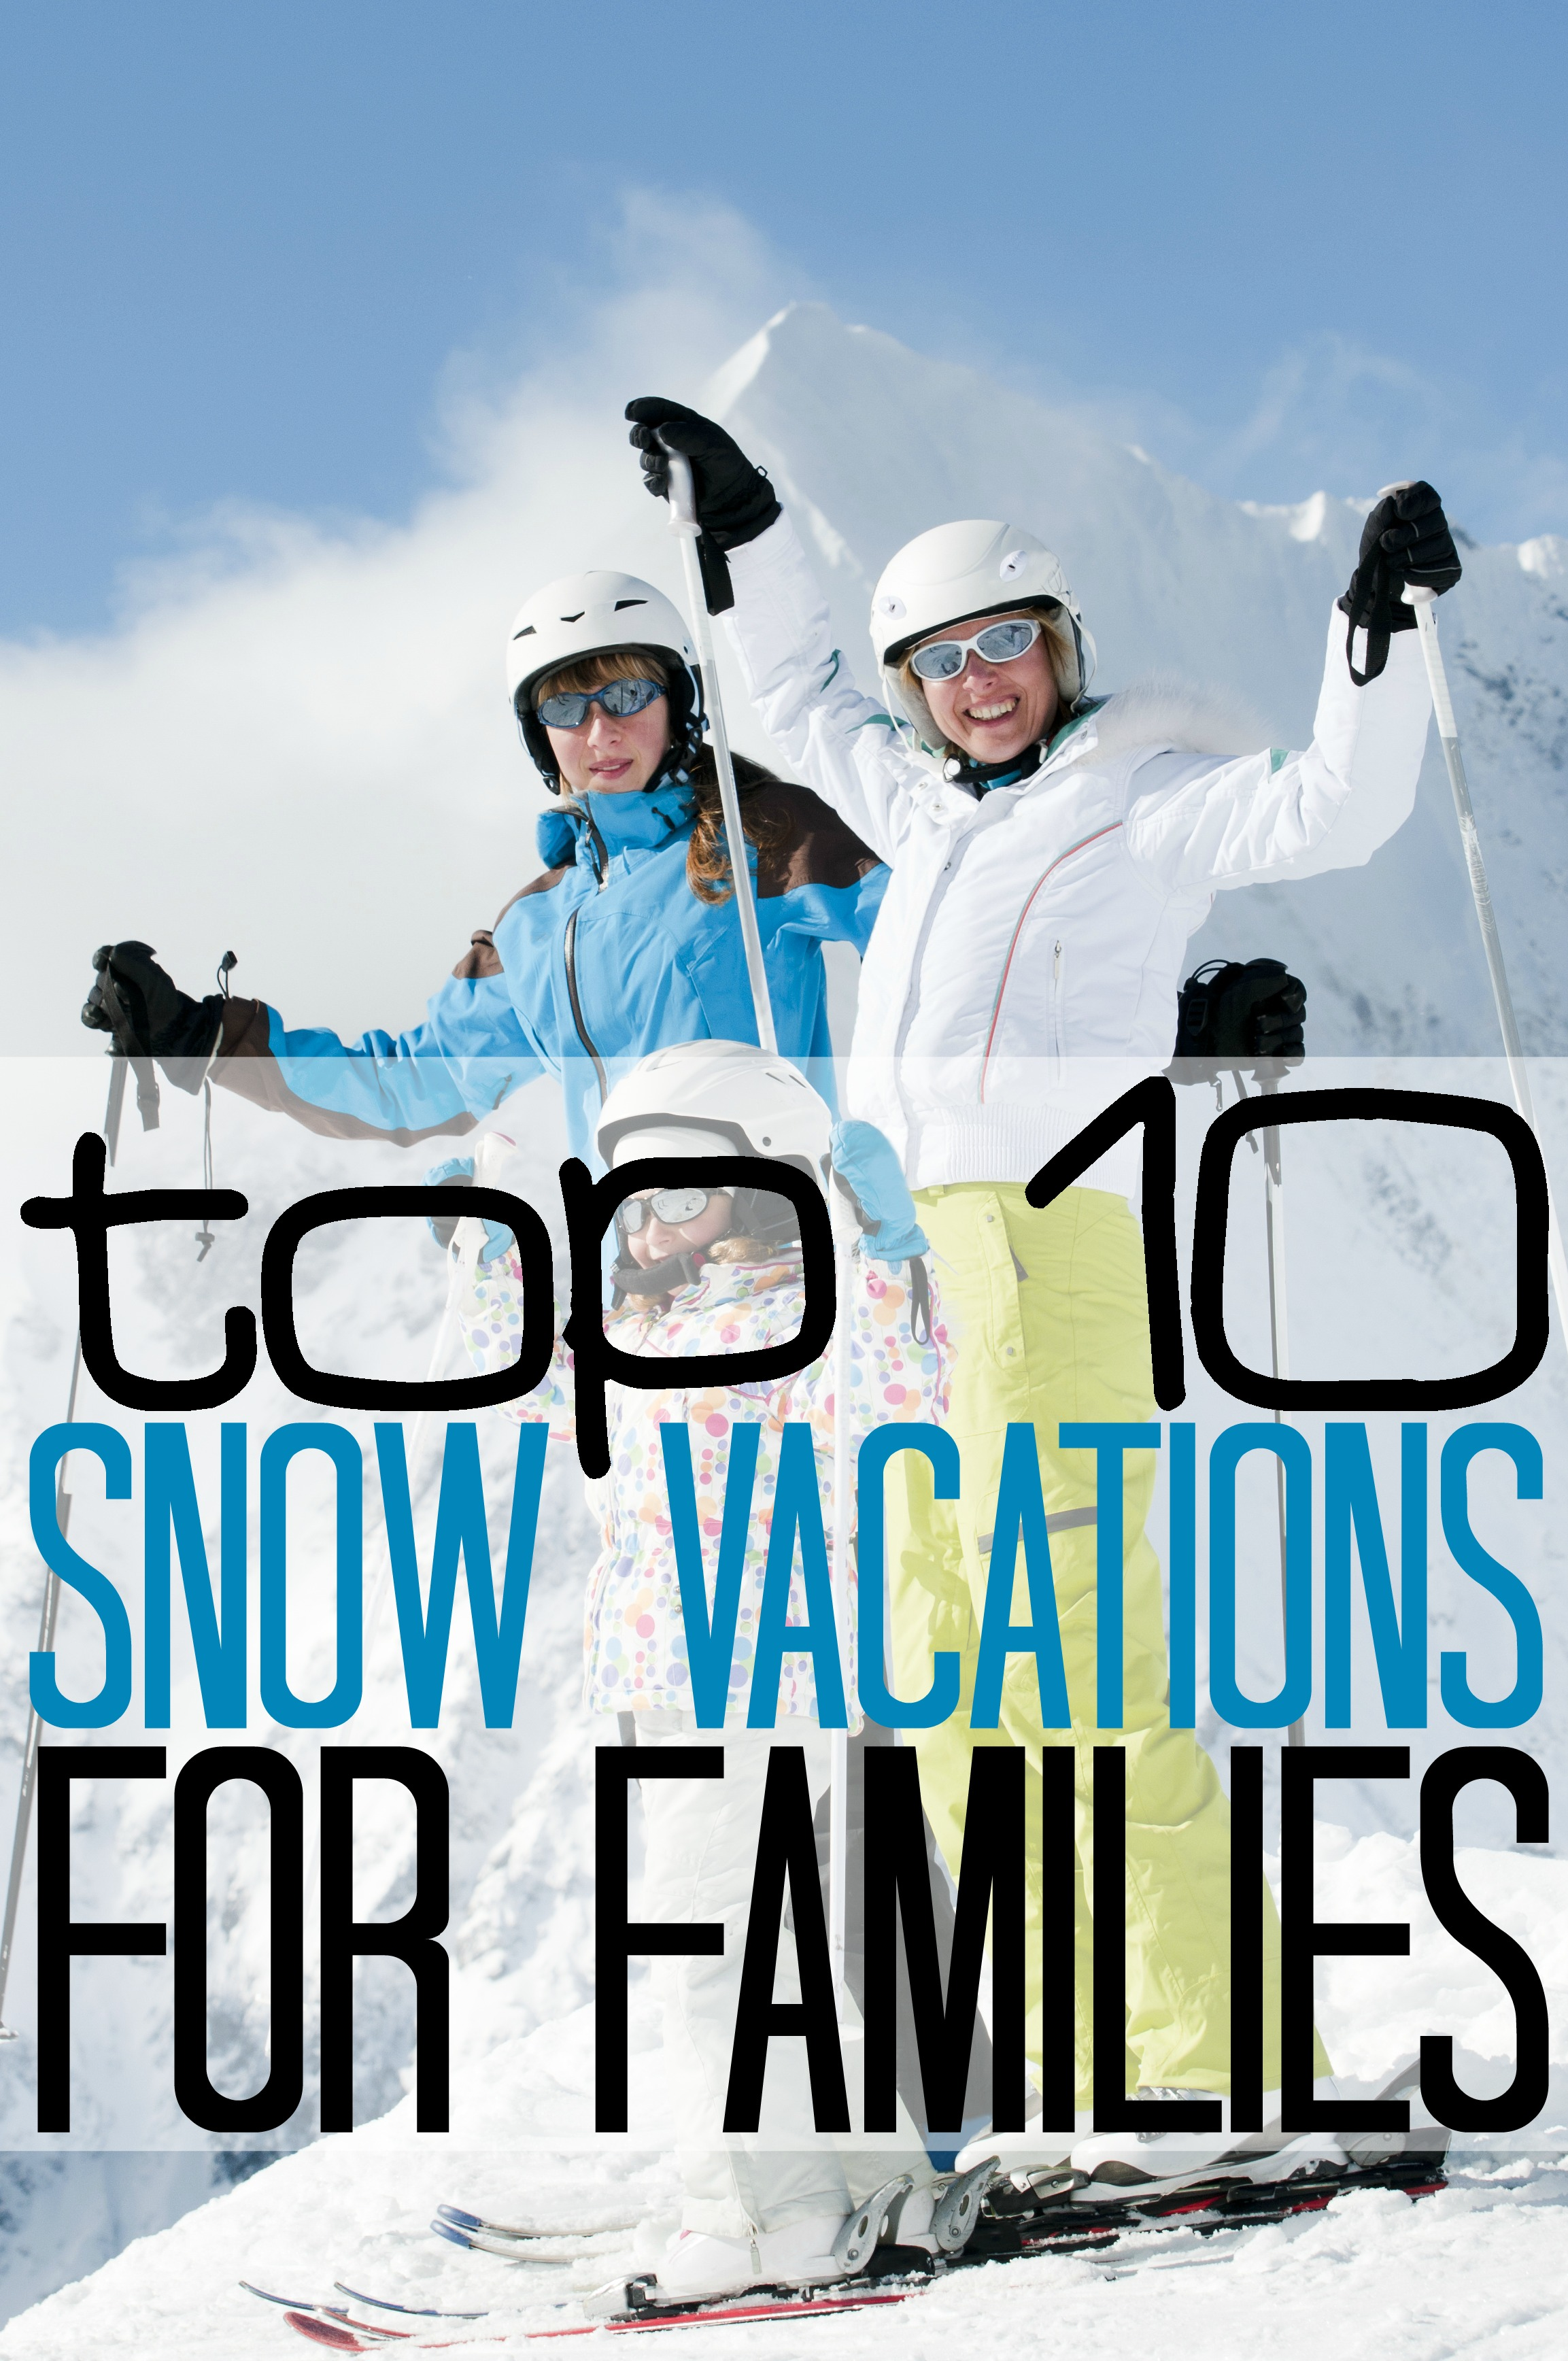 Snow vacations for families